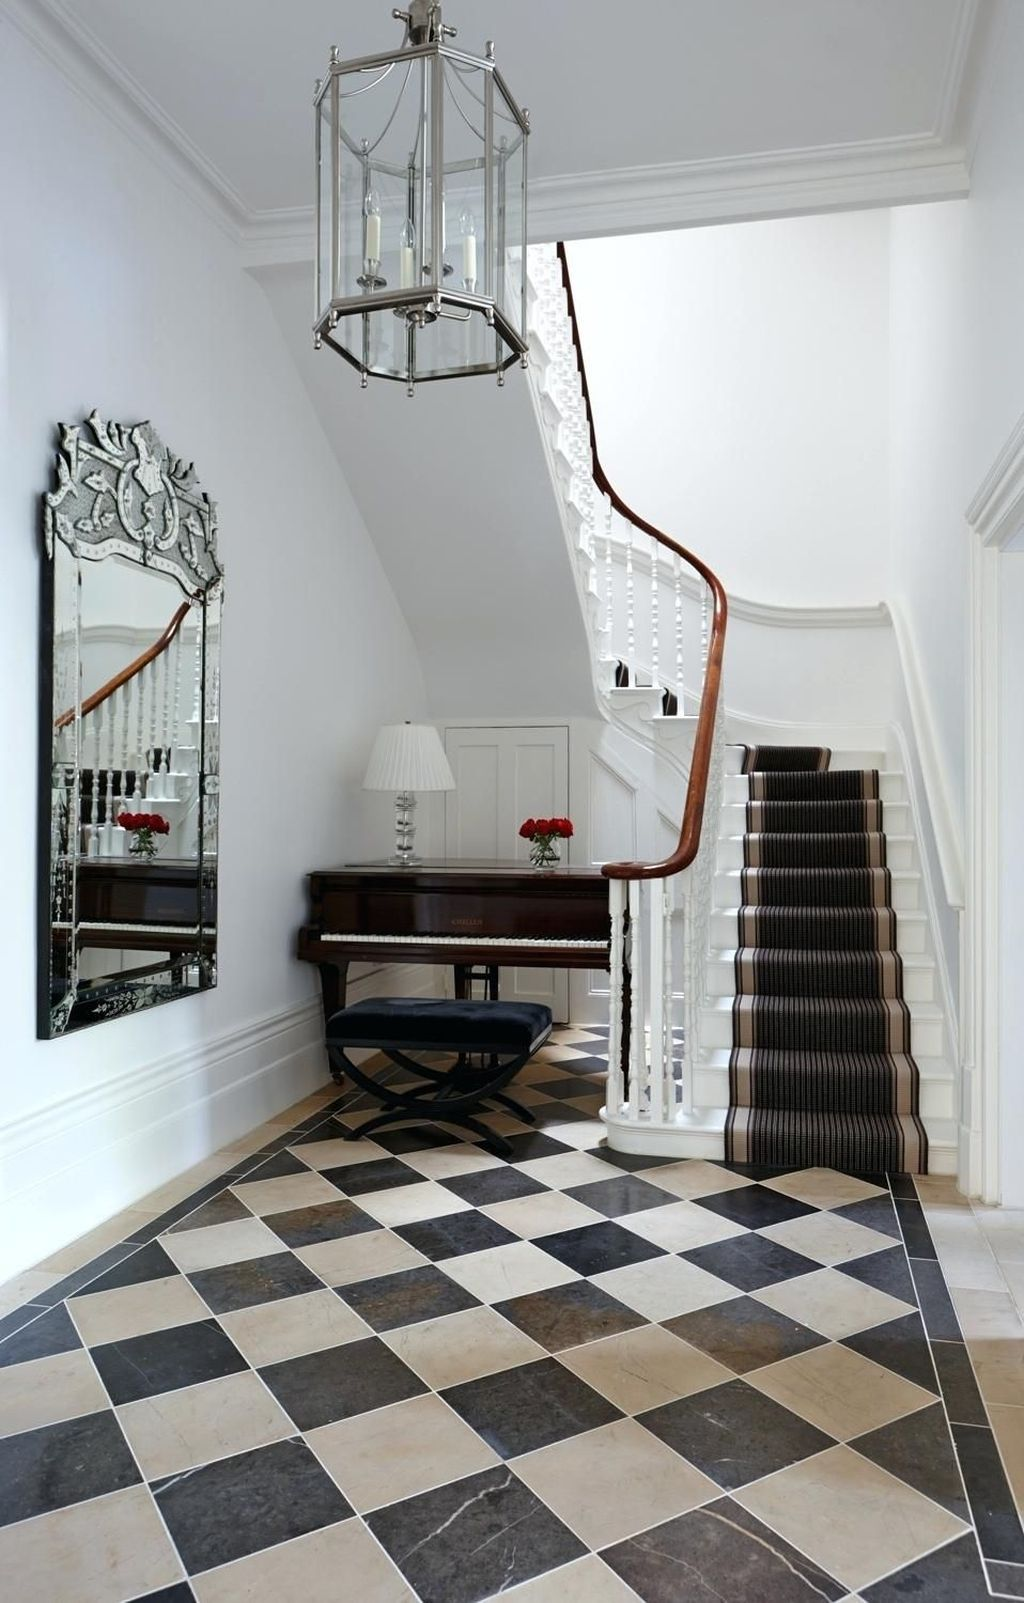 42 Affordable Marble Tiles Design Ideas In The Wooden Floor White Marble Floor White Marble Tile Floor White Tile Floor